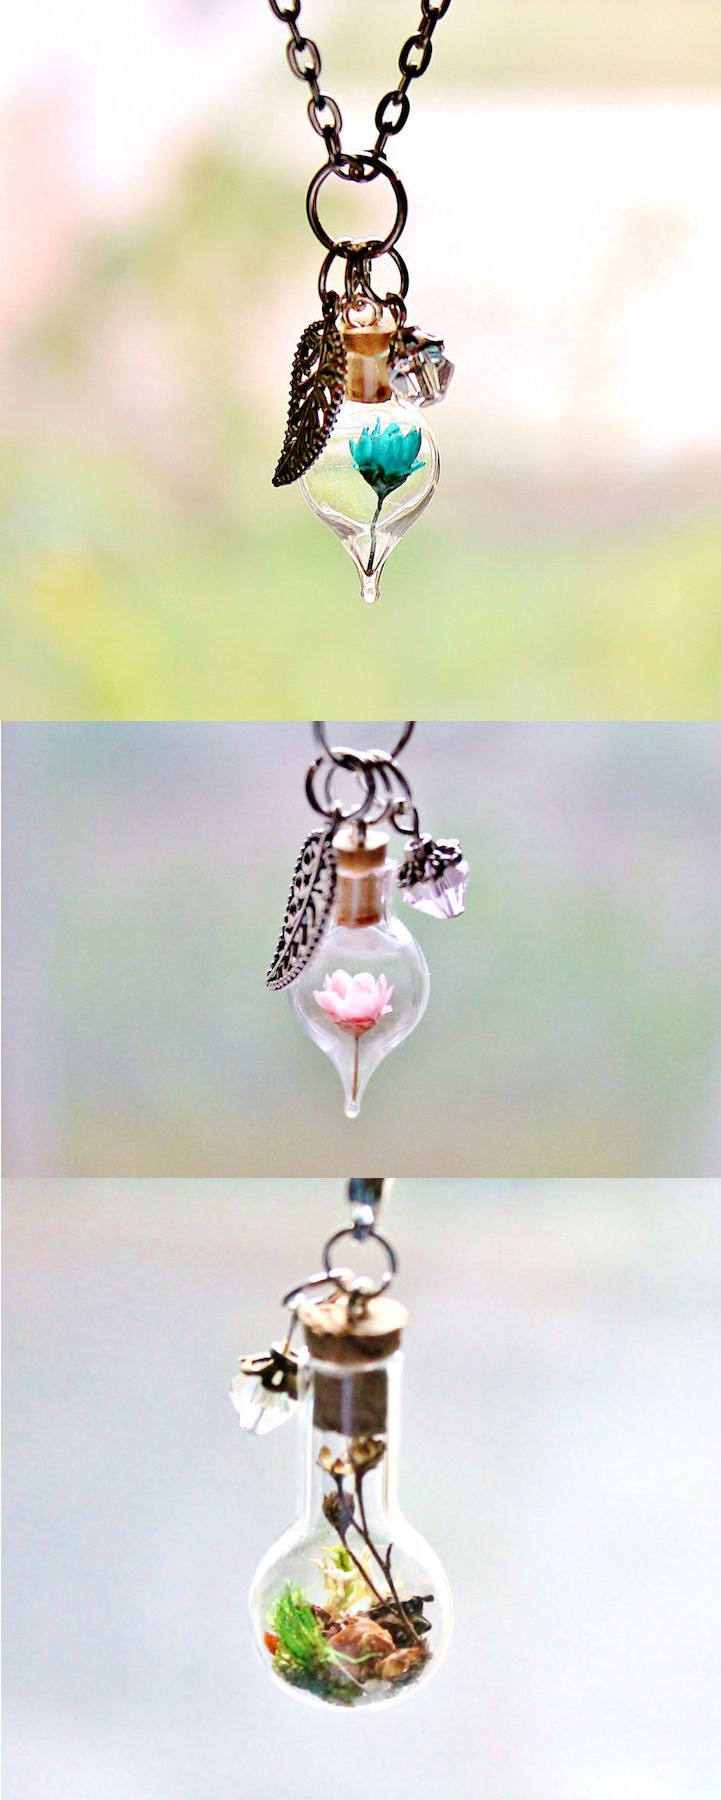 Teeny Tiny Planet's terrarium necklaces let you carry a piece of nature with you at all times.